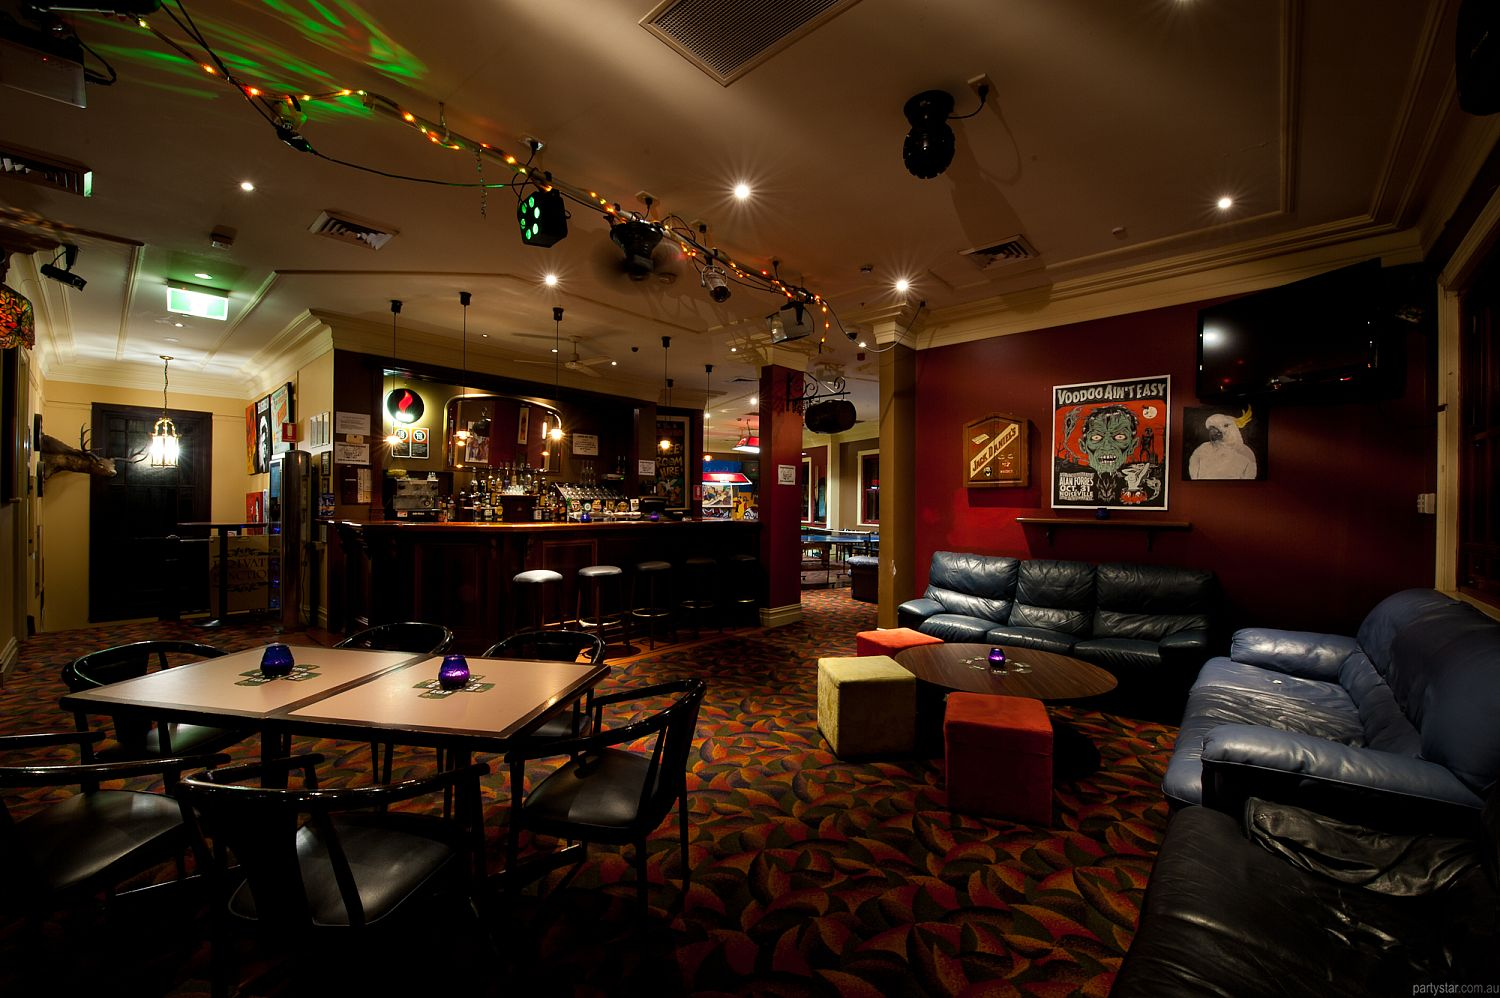 Friend In Hand Hotel, Glebe, NSW. Function Room hire photo #2